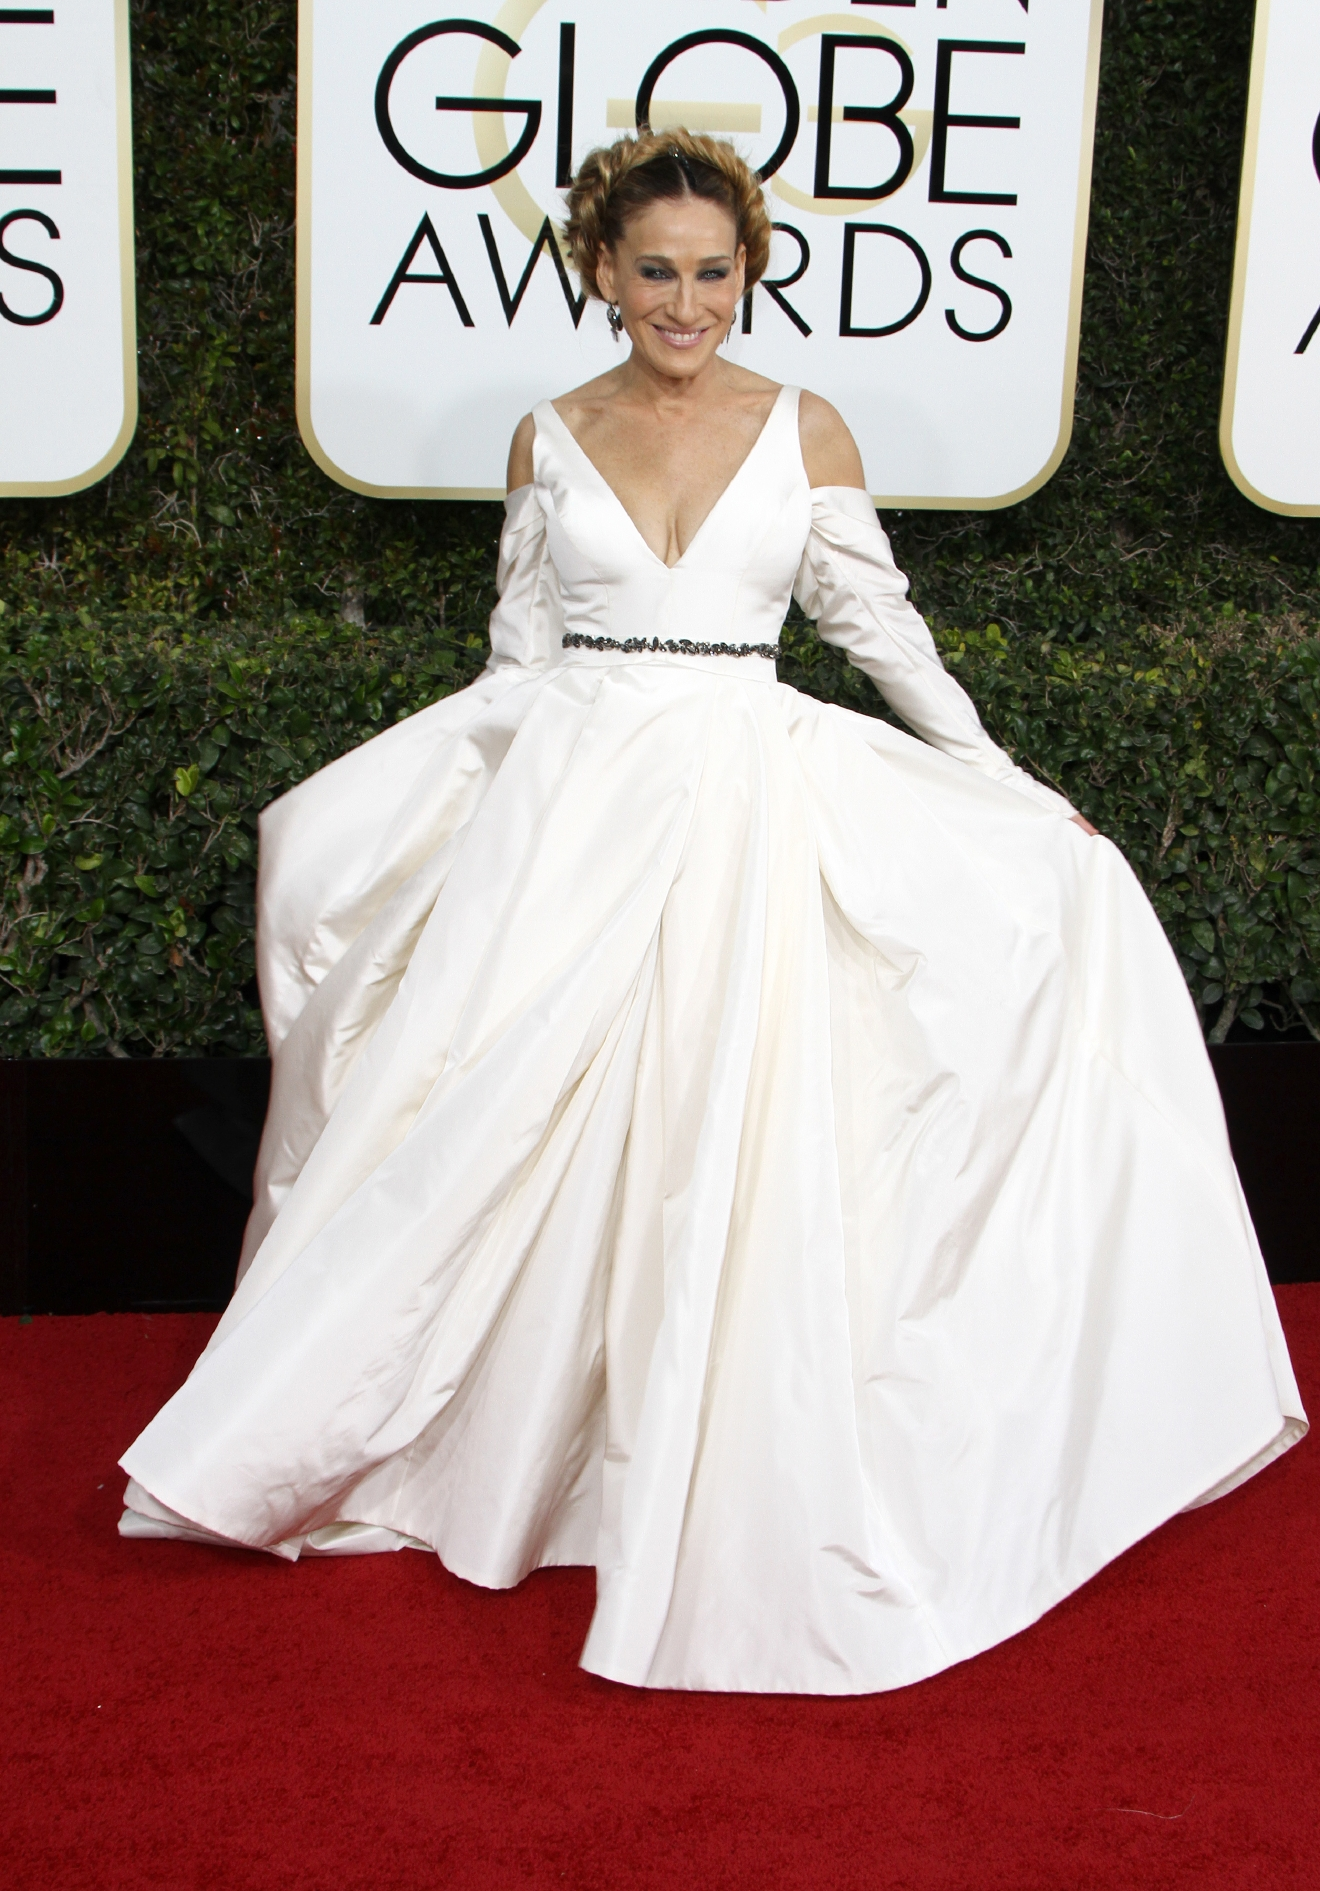 74th Annual Golden Globe Awards - Arrivals  Featuring: Sarah Jessica Parker Where: Beverly Hills, California, United States When: 08 Jan 2017 Credit: WENN.com